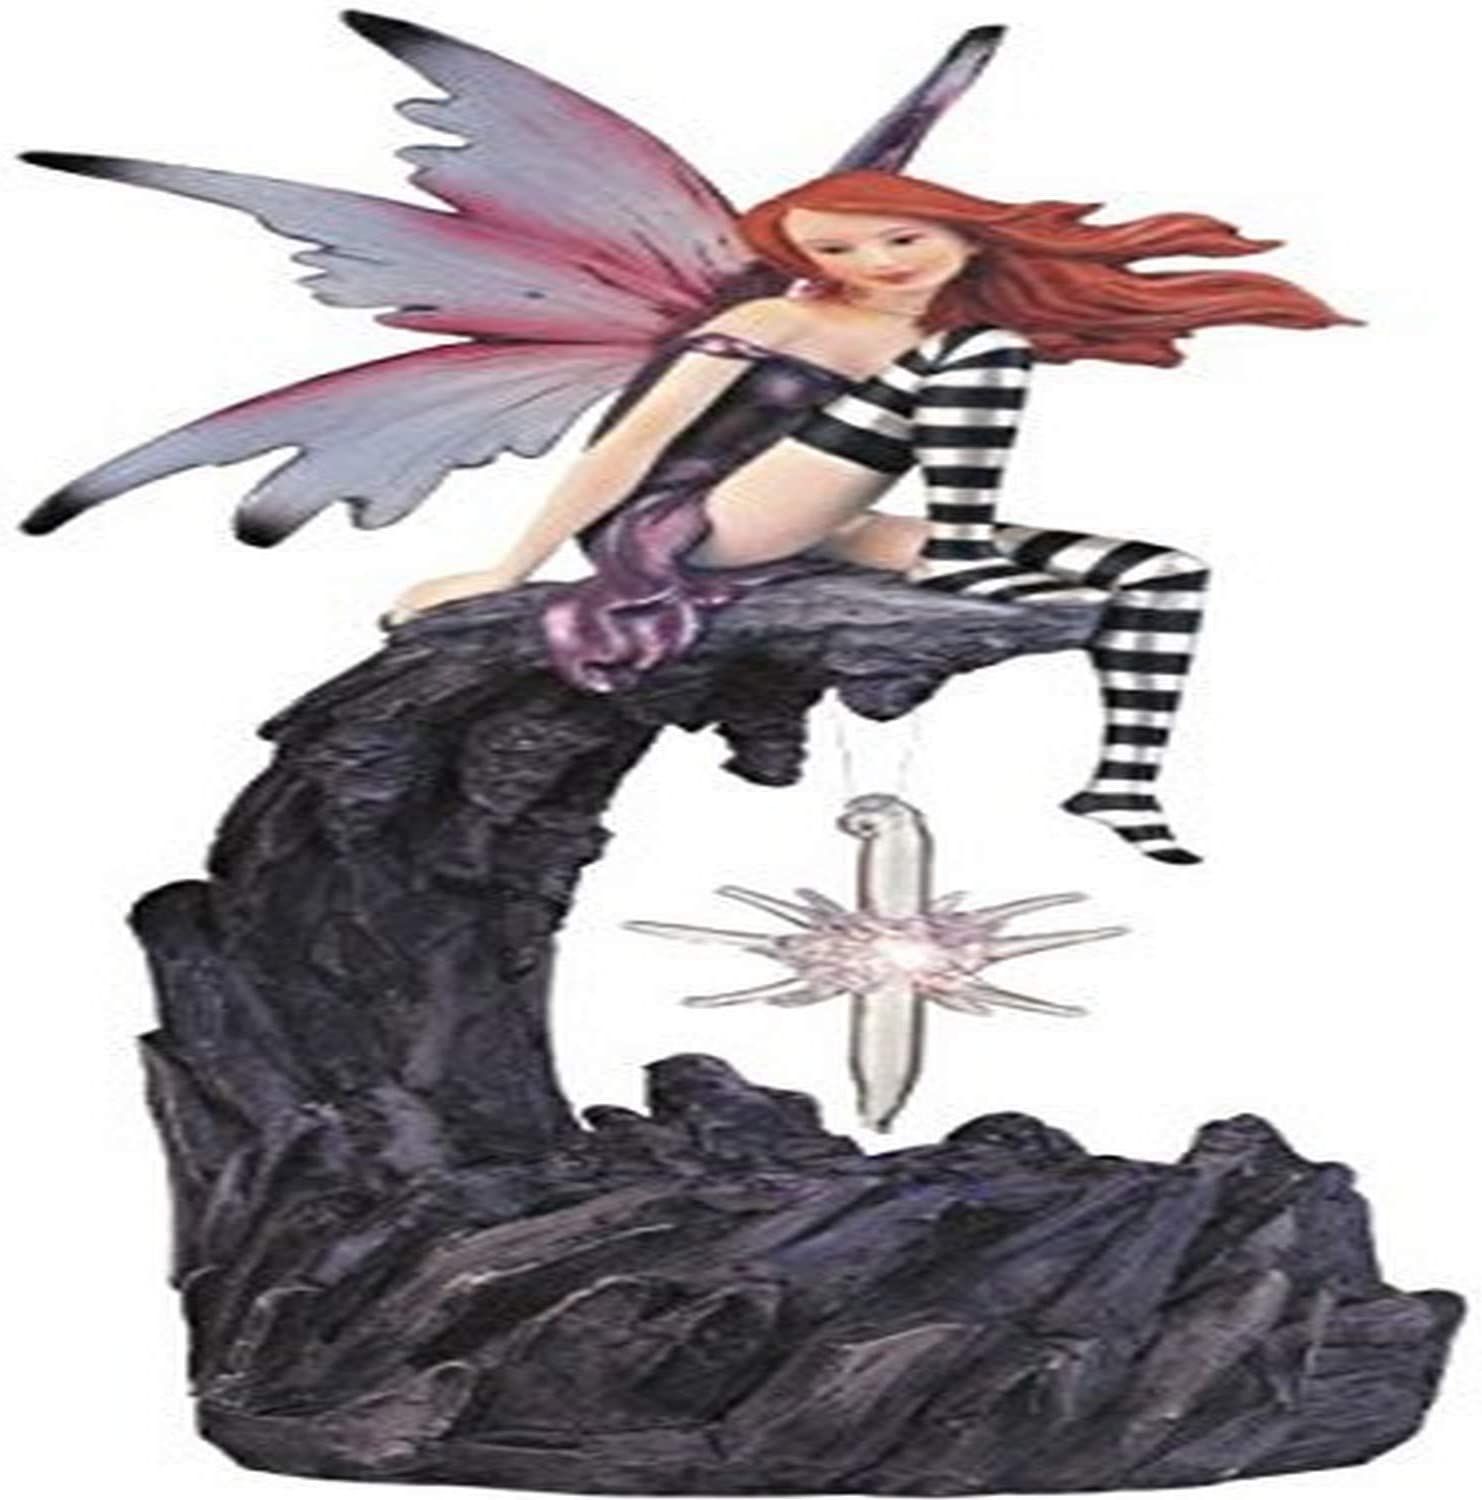 George S. Chen Imports SS-G-91260 Fairy Collection LED Light Star Fantasy Decoration Collectible Figure